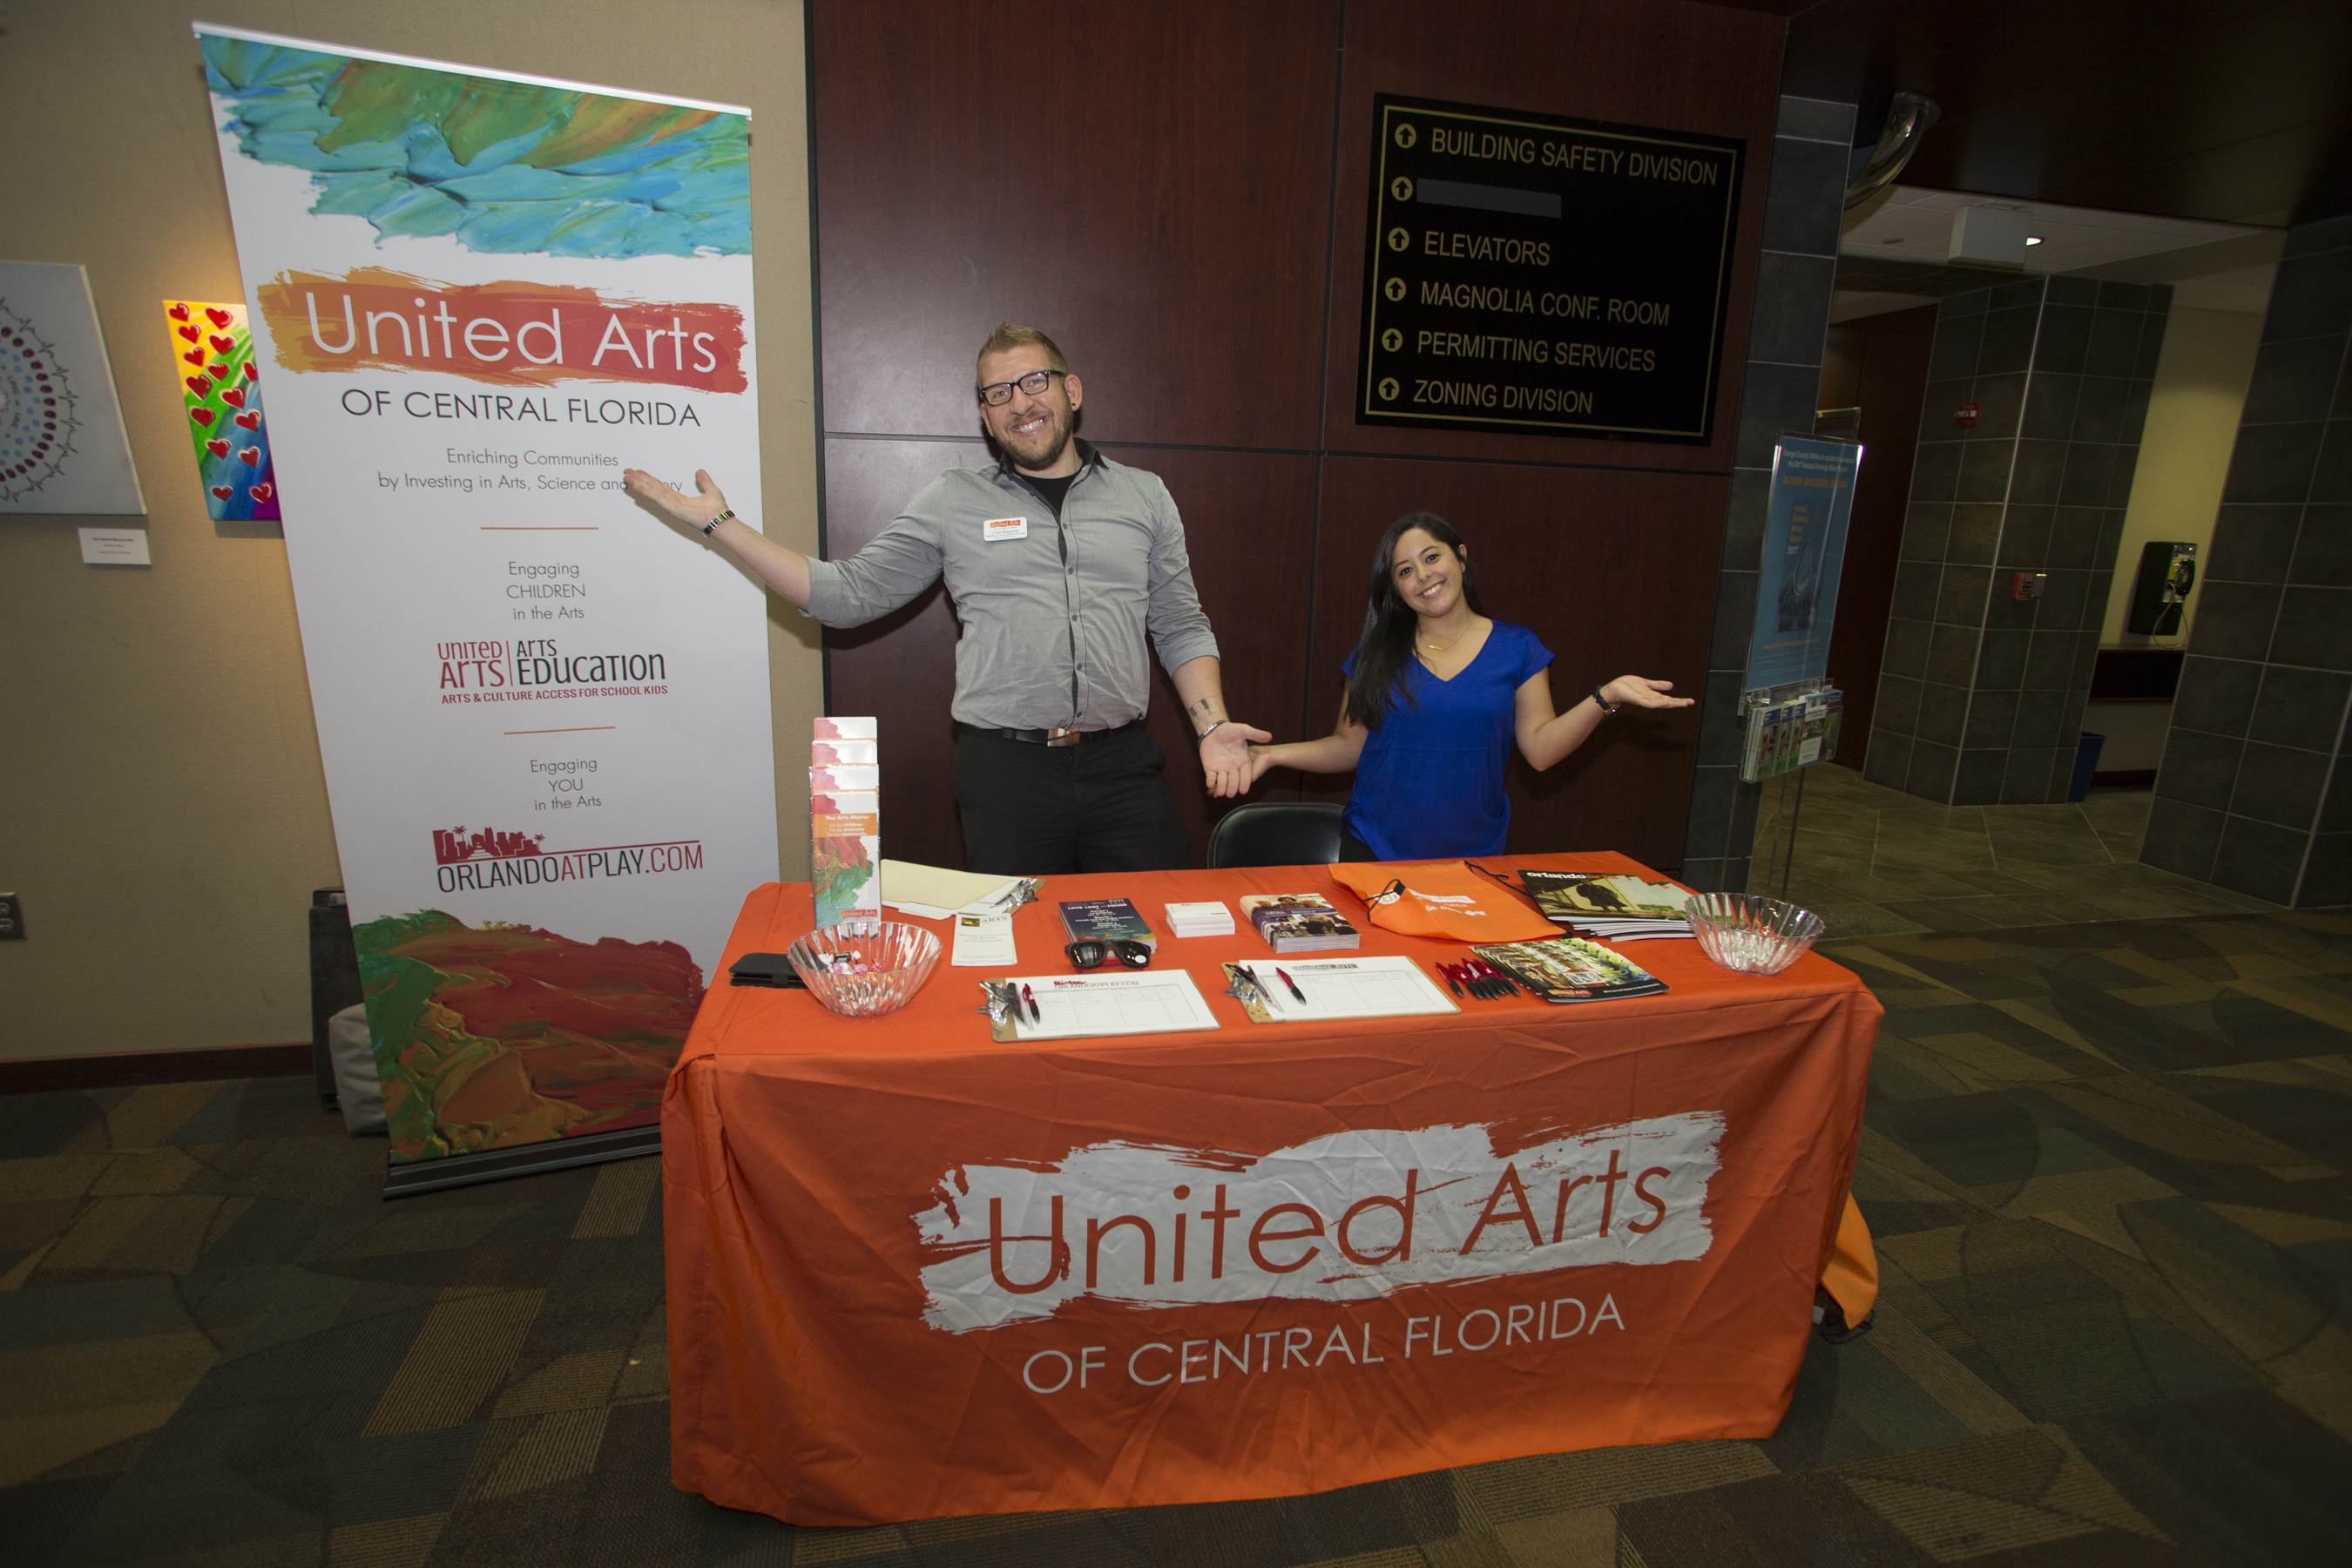 Man and woman standing behind their table where they are handing out pamphlets on behalf of United Arts of Central Florida